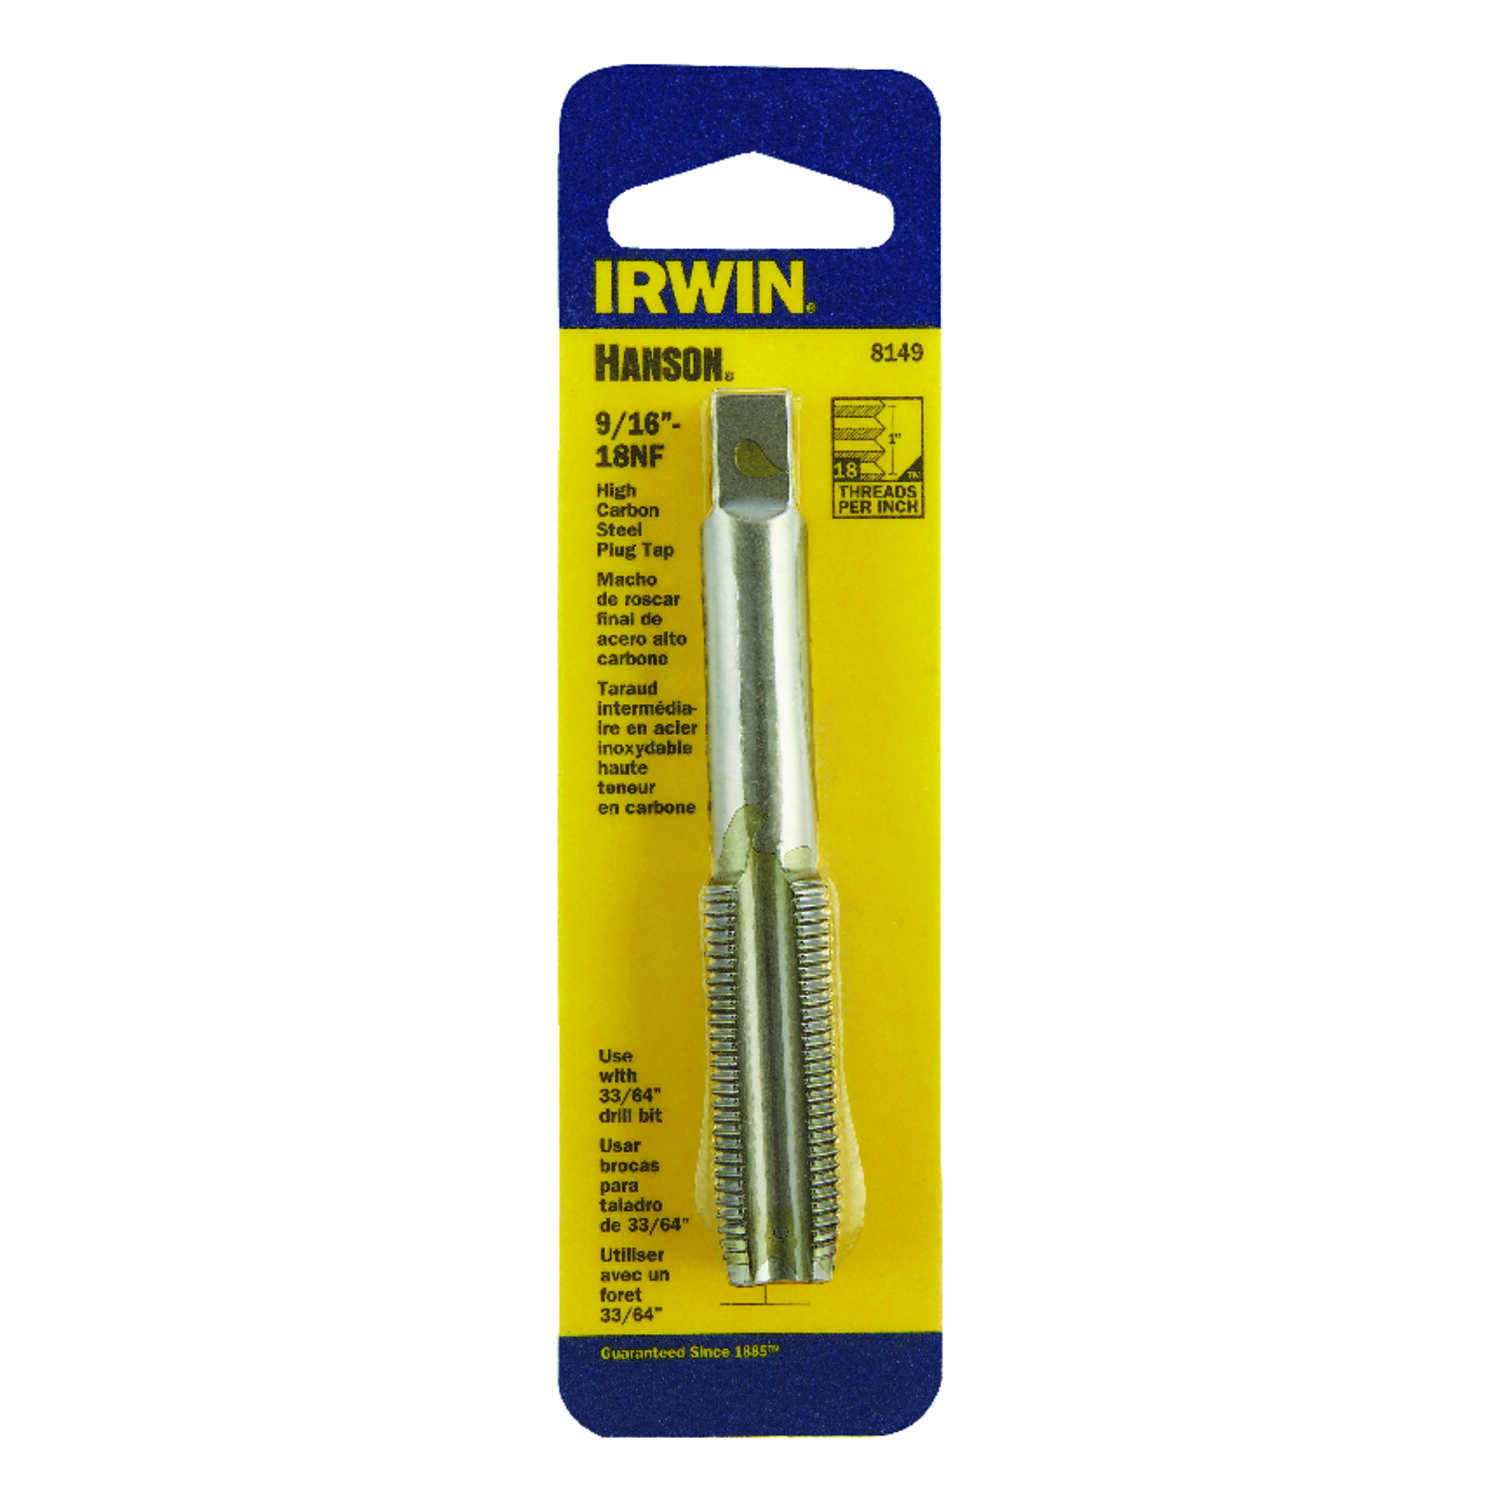 Irwin  Hanson  High Carbon Steel  SAE  Fraction Tap  9/16 in.-18NF  1 pc.